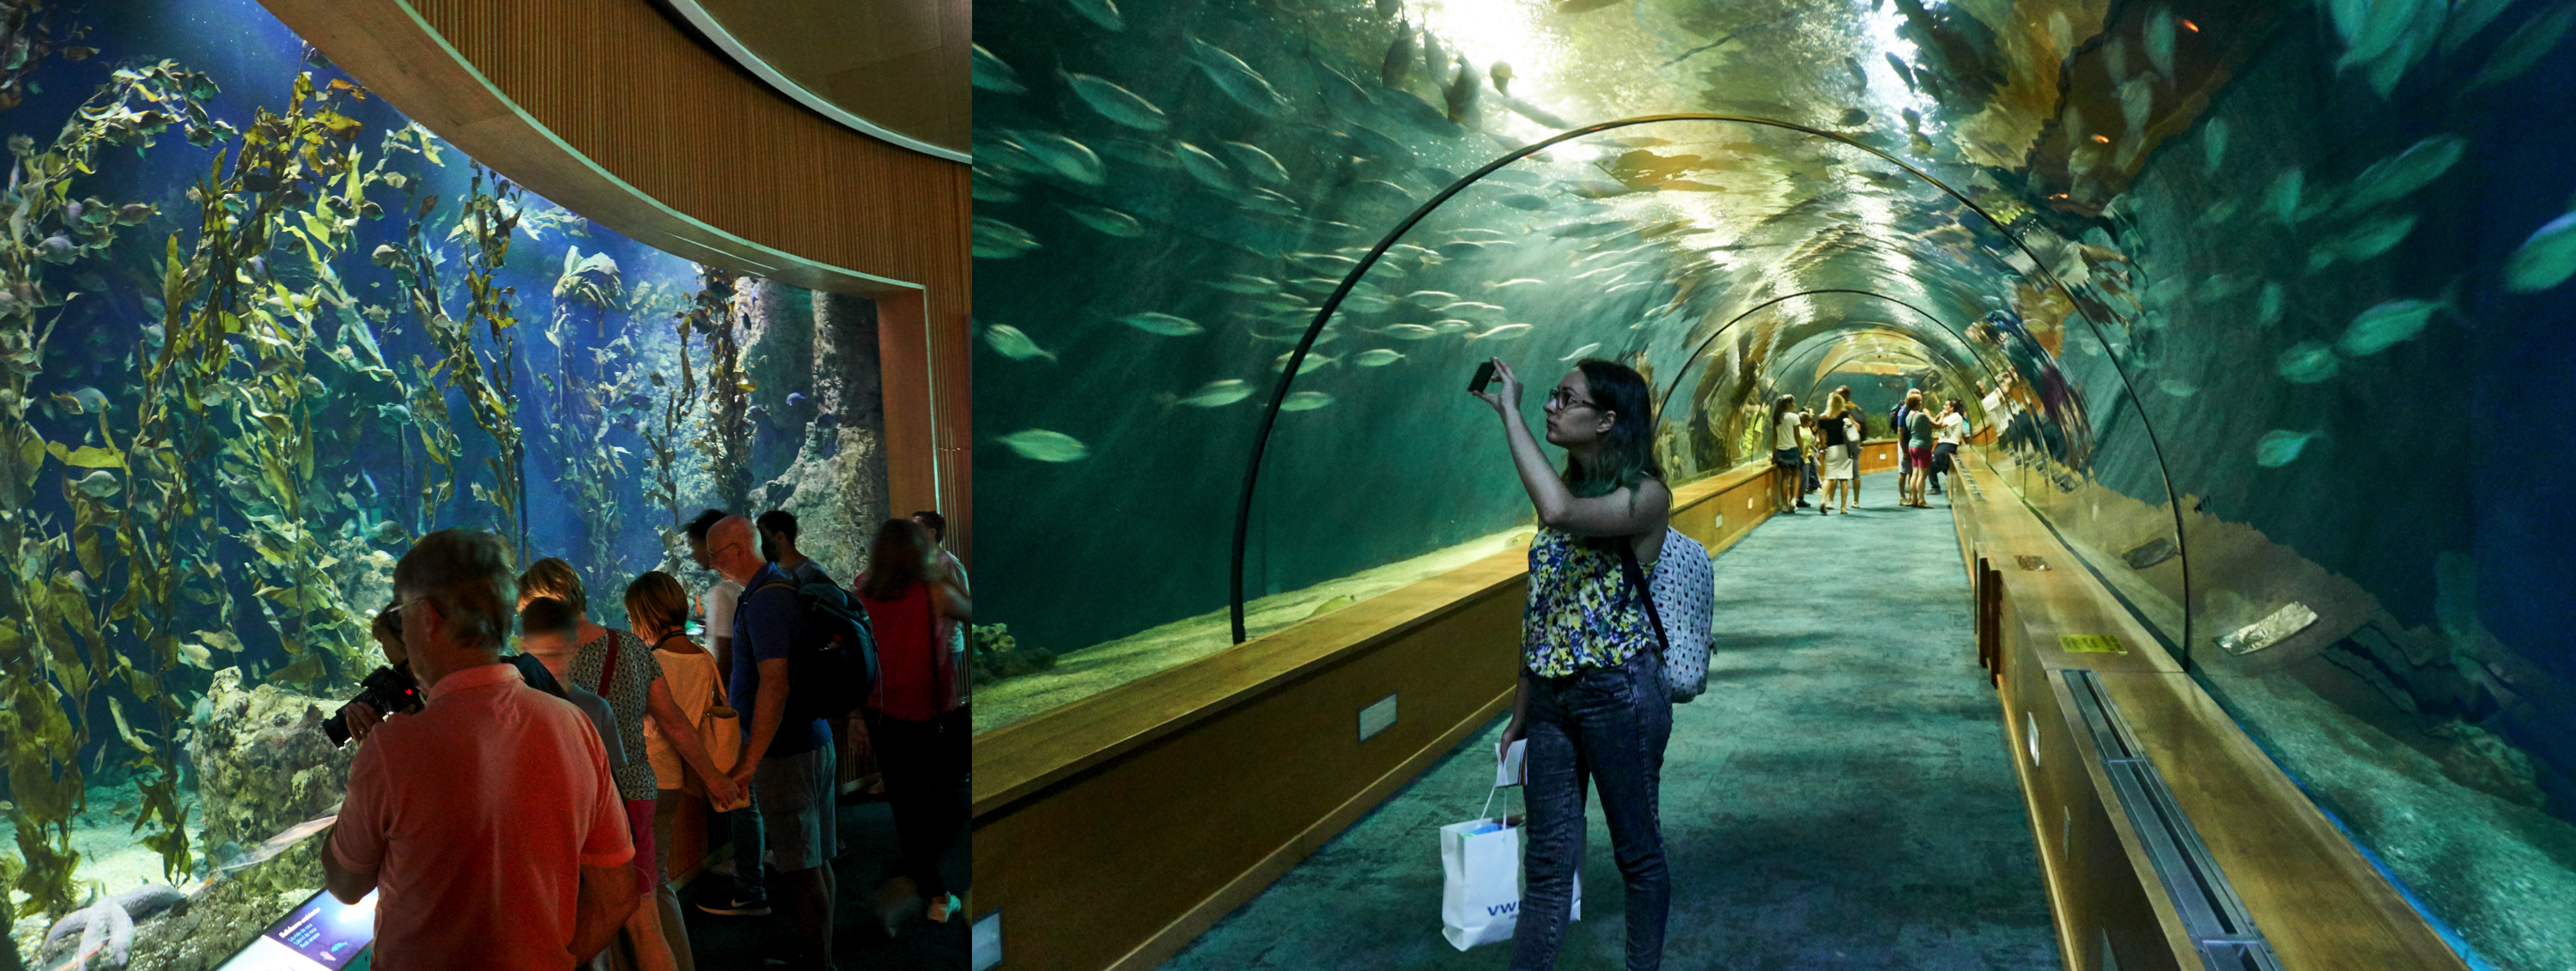 One of the aquariums and the big tunnel